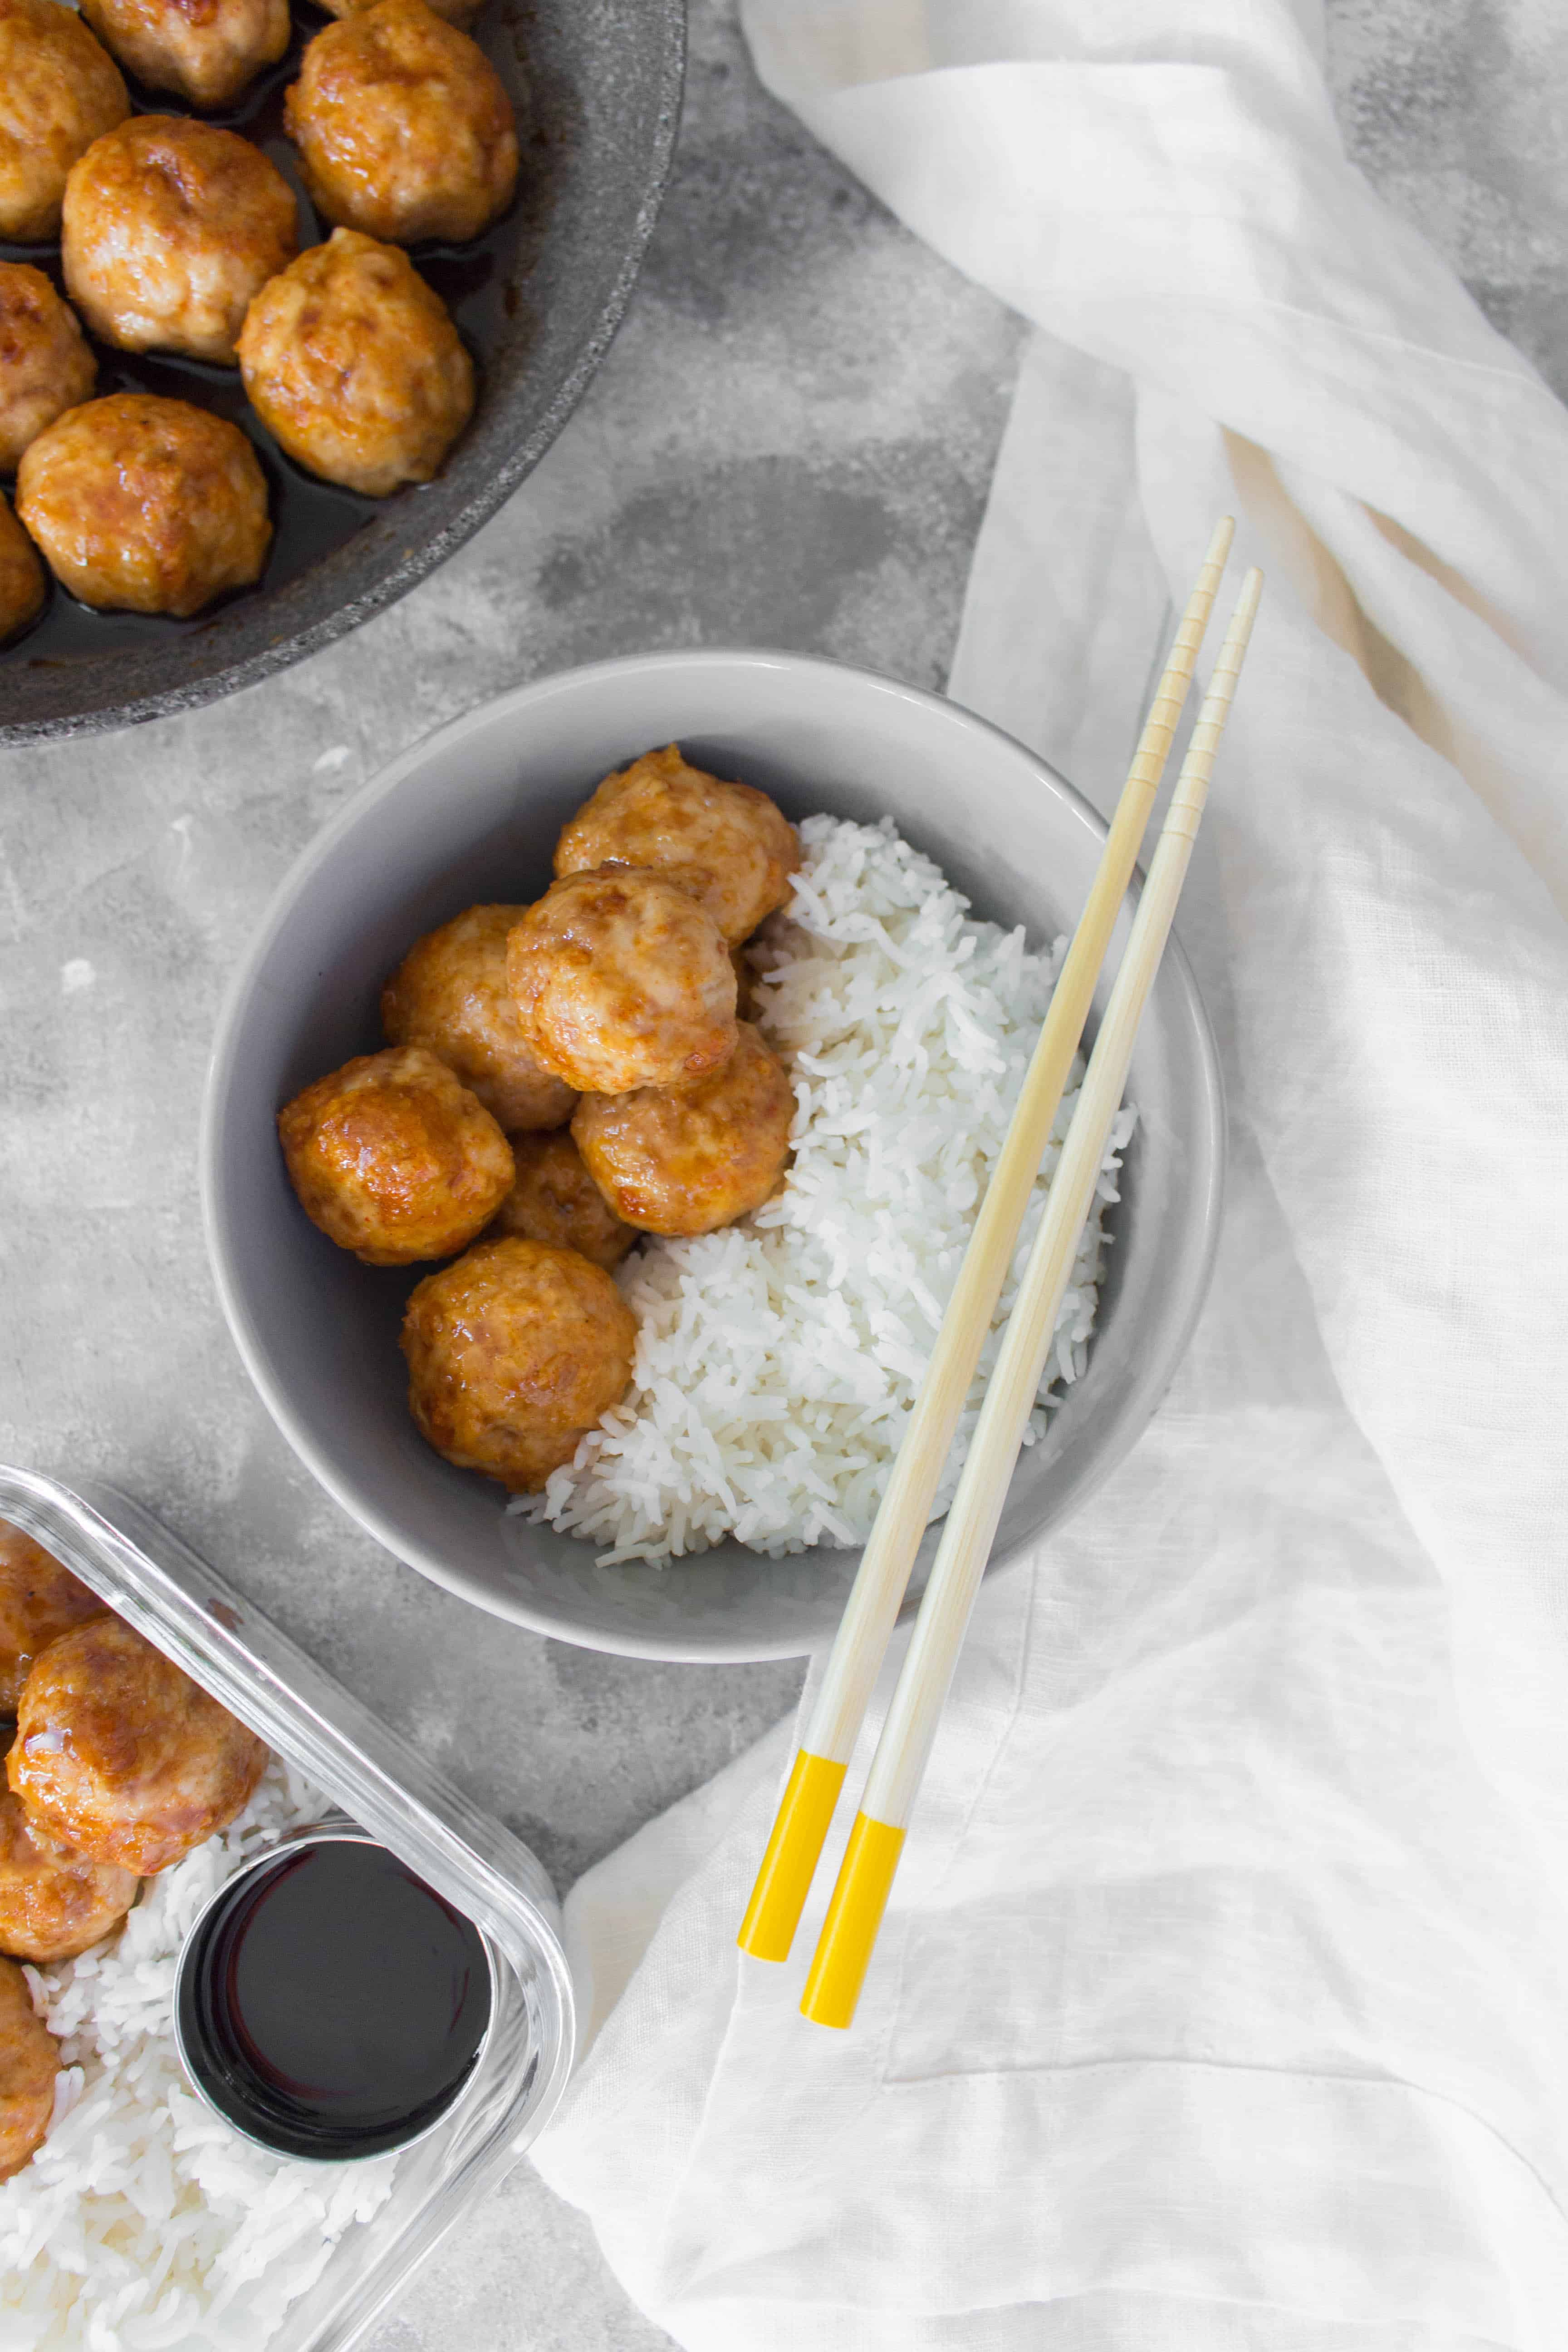 These Yakitori Meatballs are layered with sweet and savoury flavours. Make these for your meal prep this week or as a delicious weeknight dinner.